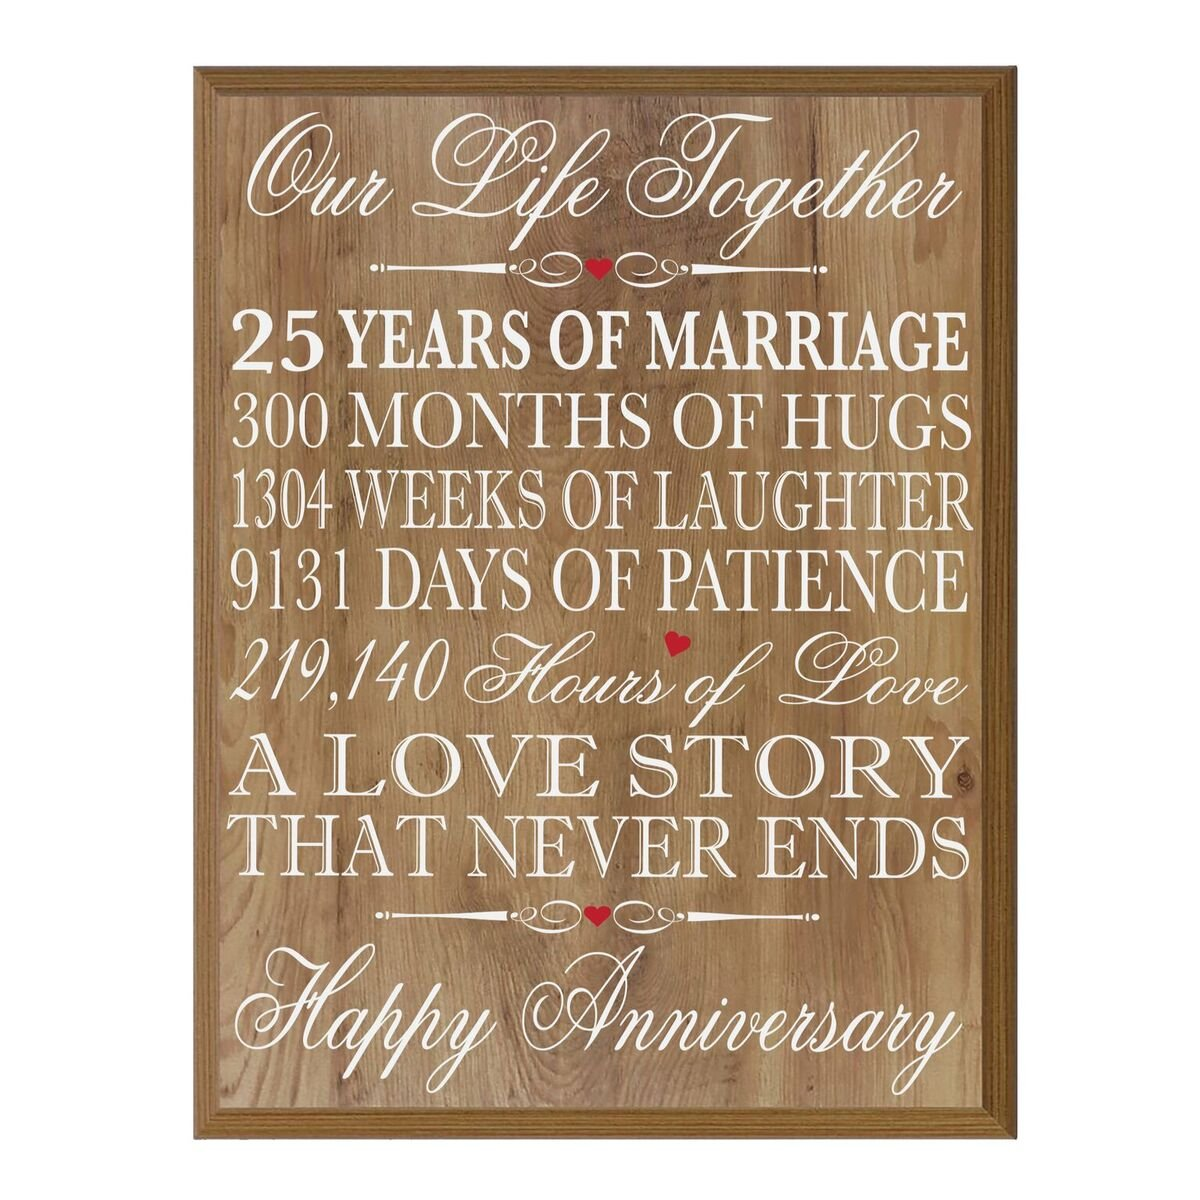 40th Wedding Anniversary Gifts.Buy 40th Wedding Anniversary Wall Plaque Gifts For Couple